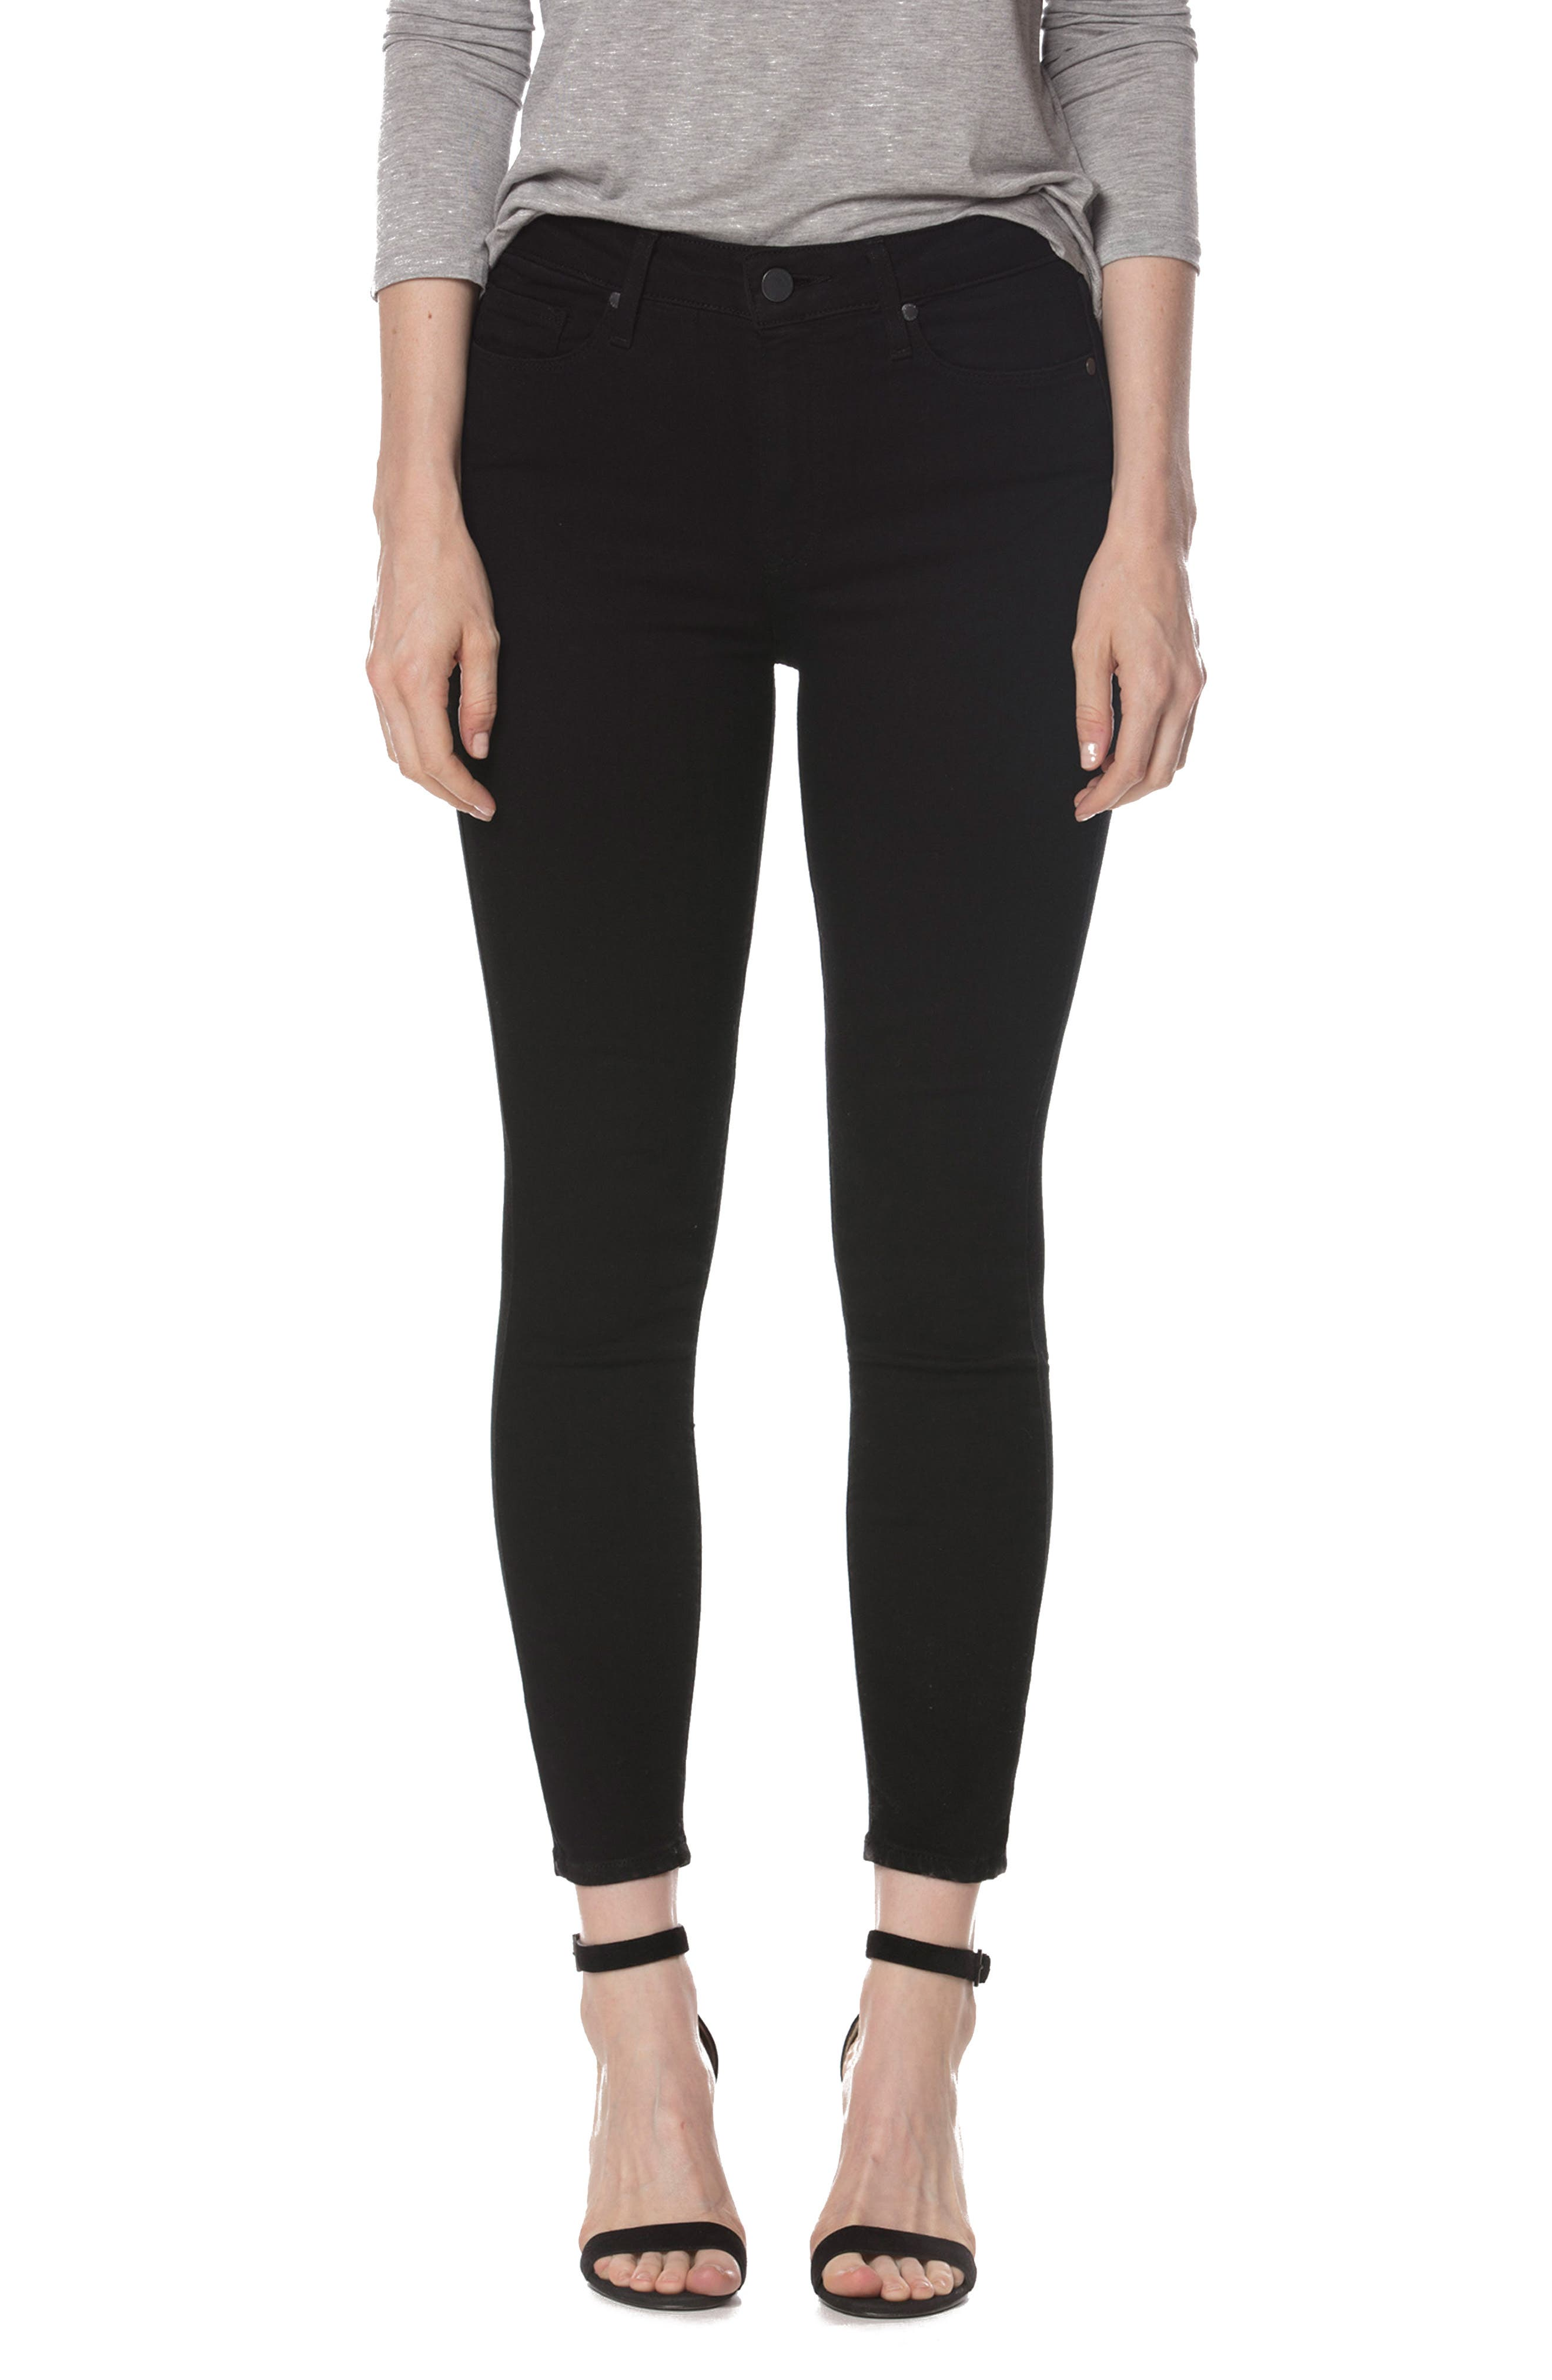 Alternate Image 1 Selected - PAIGE Hoxton High Waist Crop Skinny Jeans (Black Shadow)